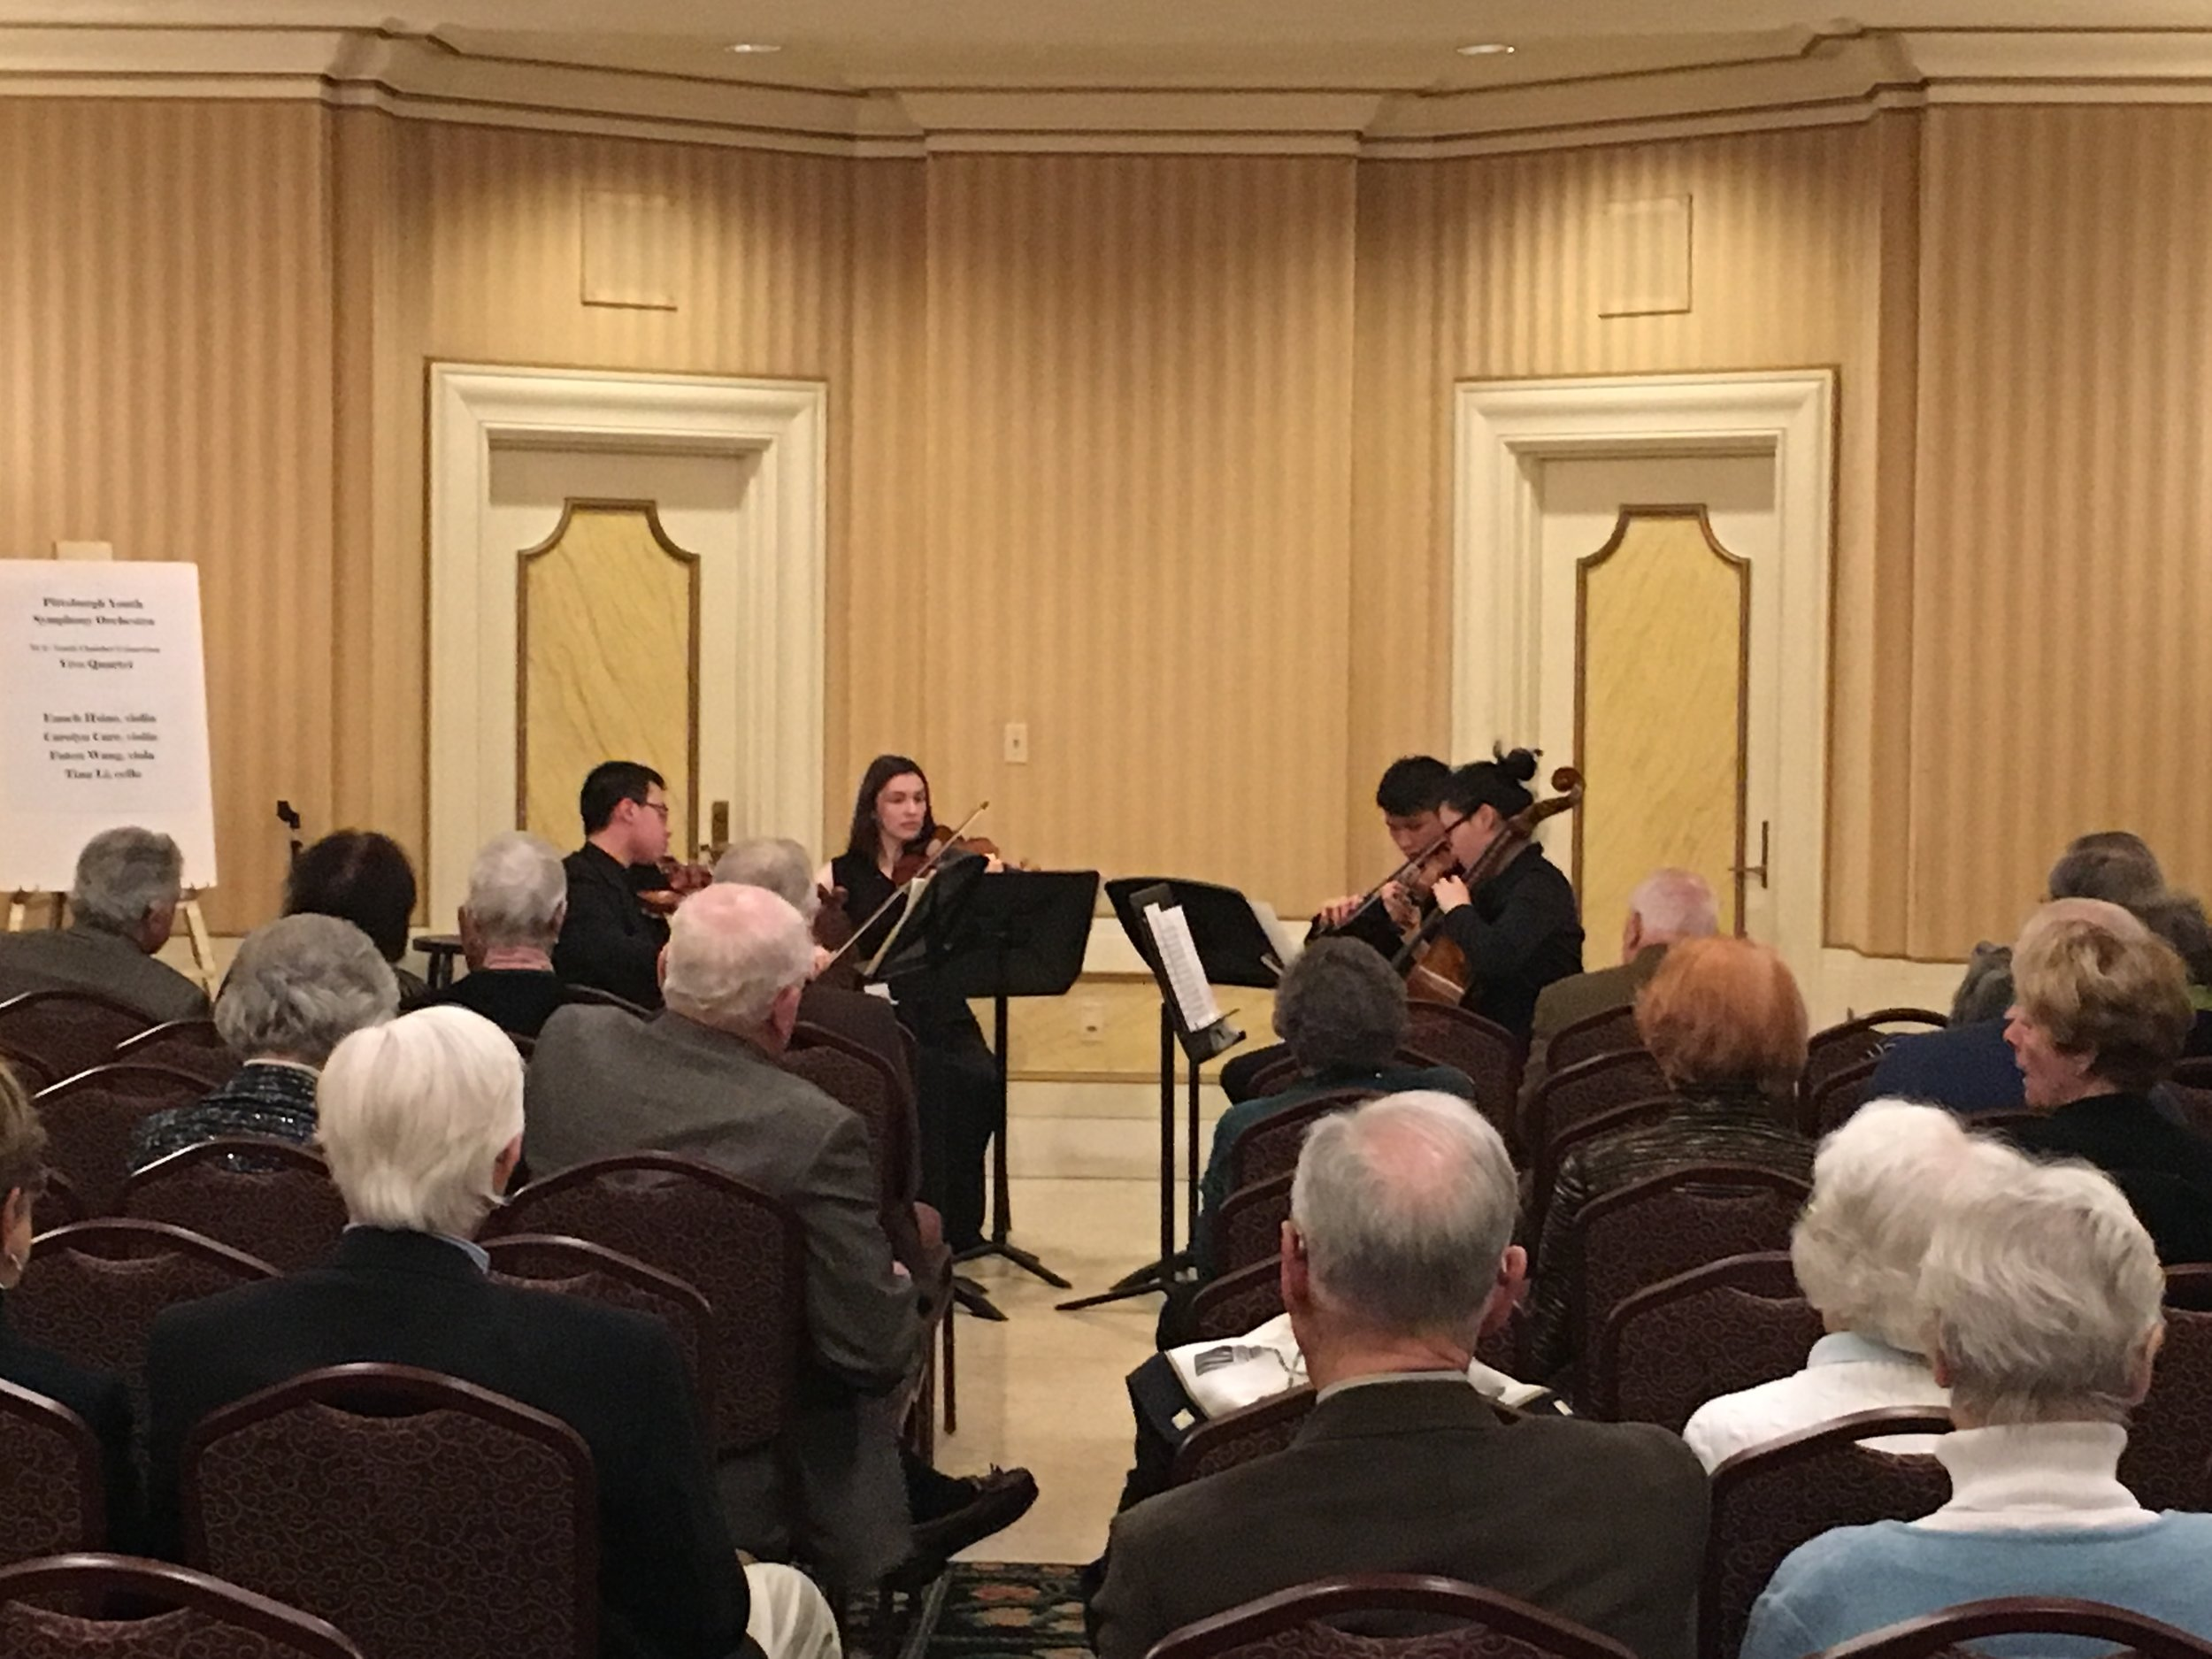 Friends of the PSO - February 21, 2019PYSO's award-winning Vivo Quartet performed for donors of the Pittsburgh Symphony Orchestra at their February gathering.